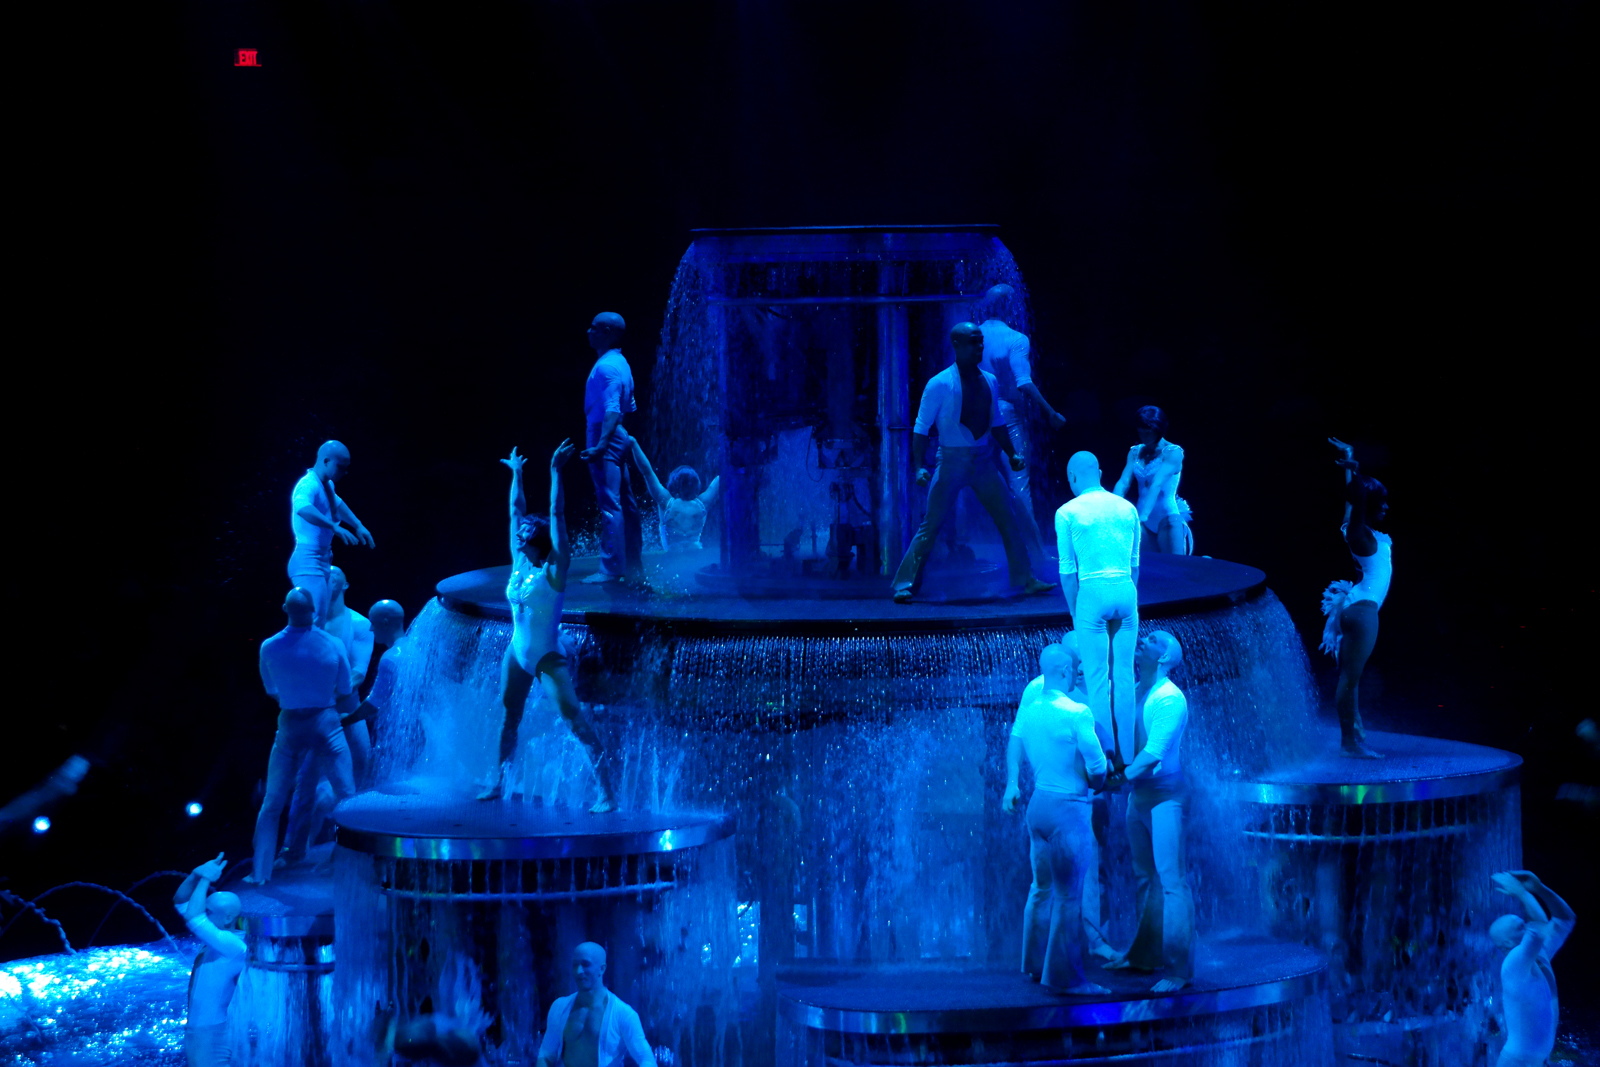 Le-Rêve-The-Dream-best-production-show-wynn-Las-Vegas-Perfomers-swimmers-acrobatics-water-Franco-Dragone-spectacle-le-reve-imagelogger-photo-by-united-states-of-paris-blog